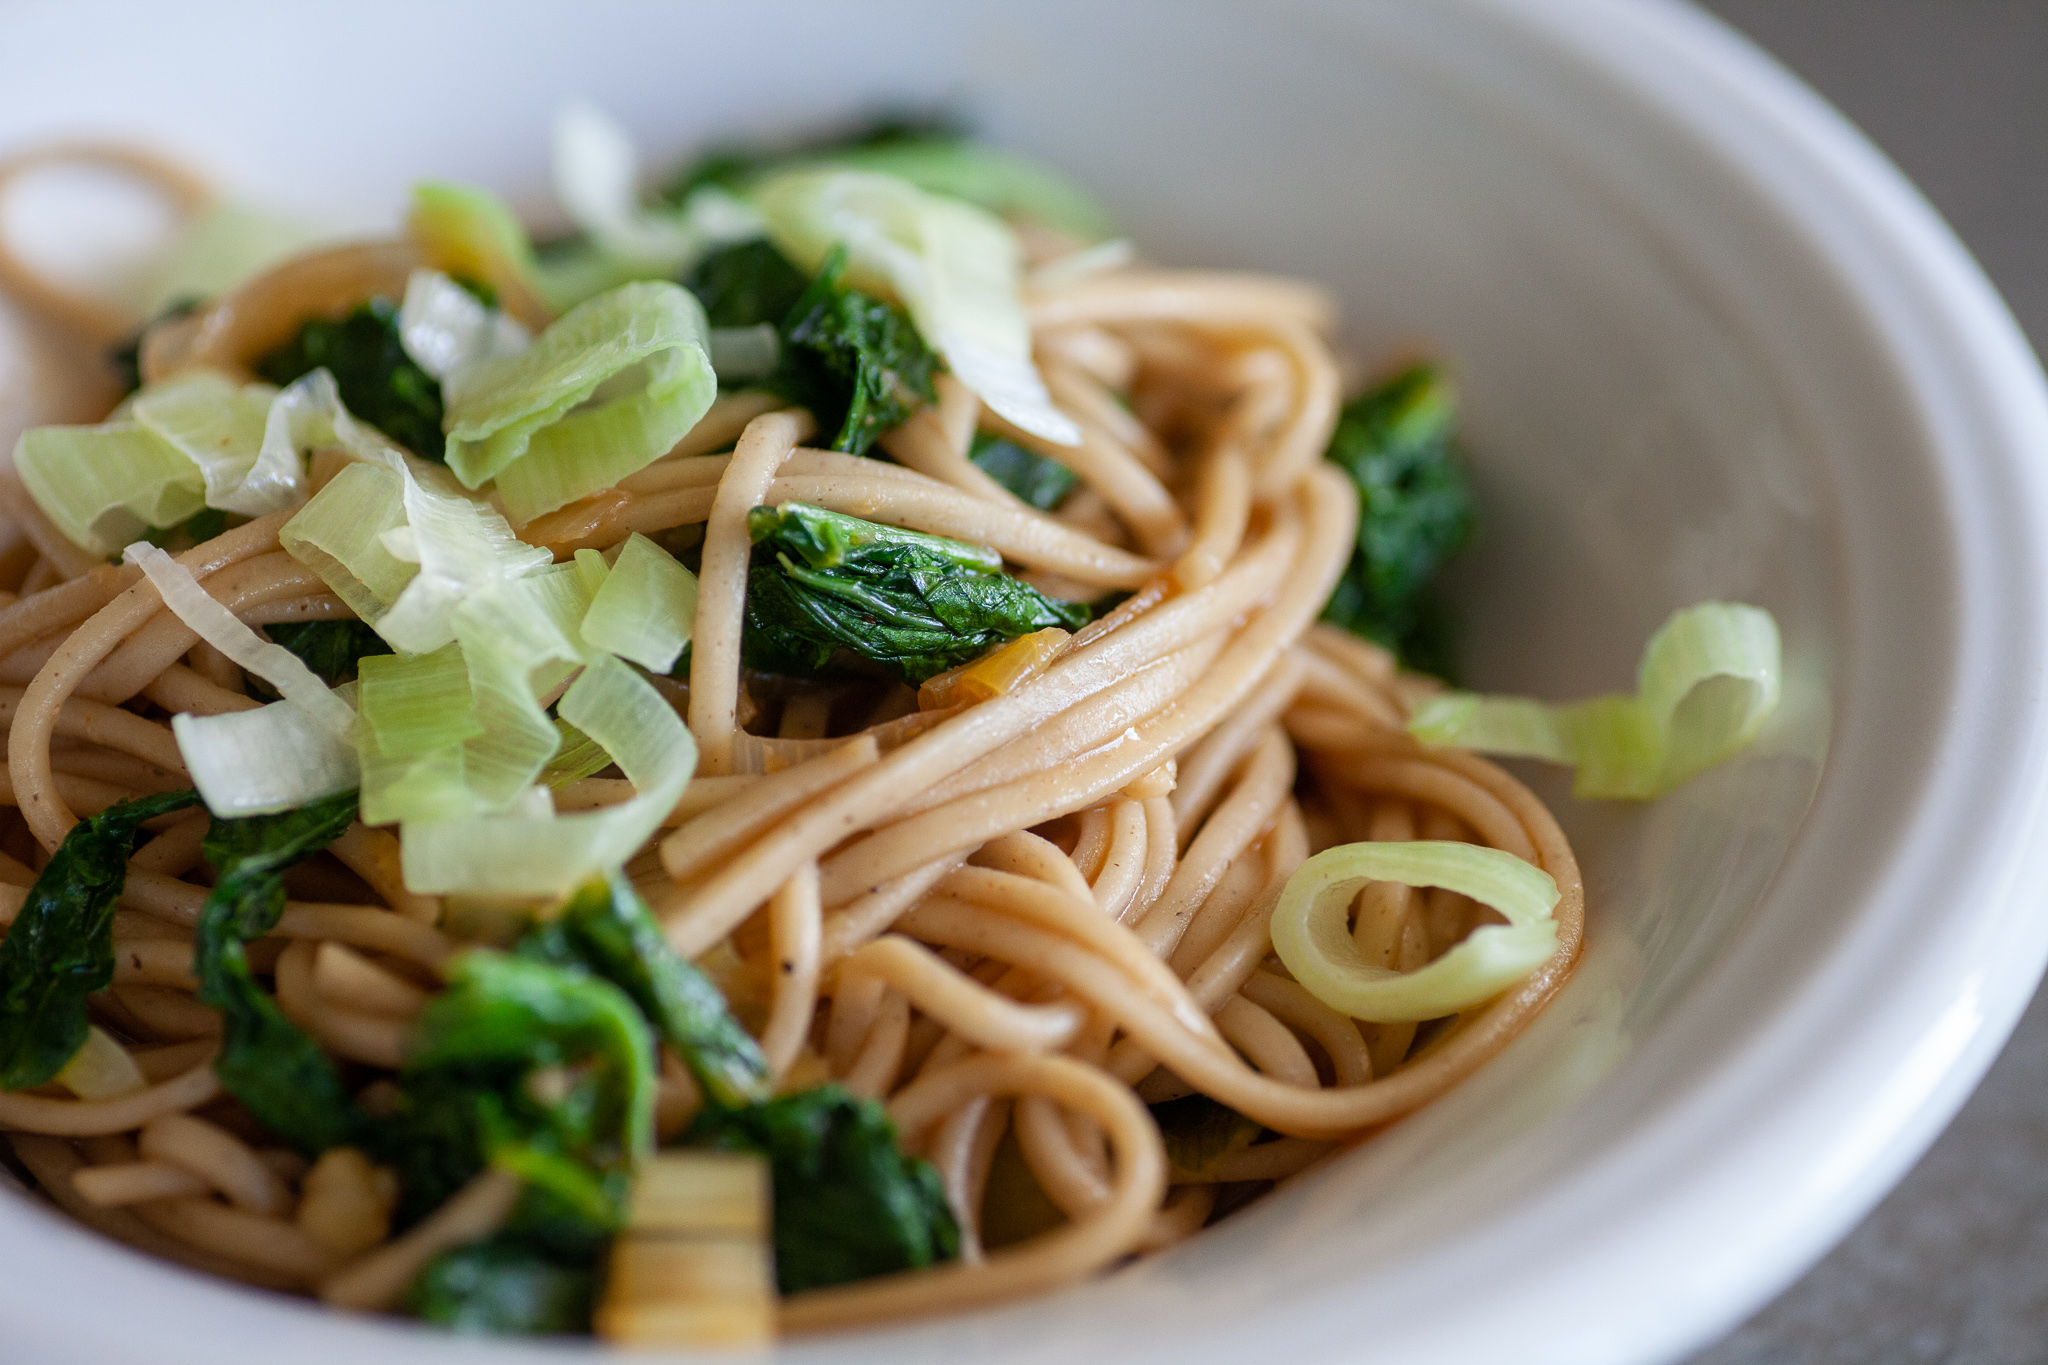 Soba noodles from Milk Street Tuesday Nights cookbook.